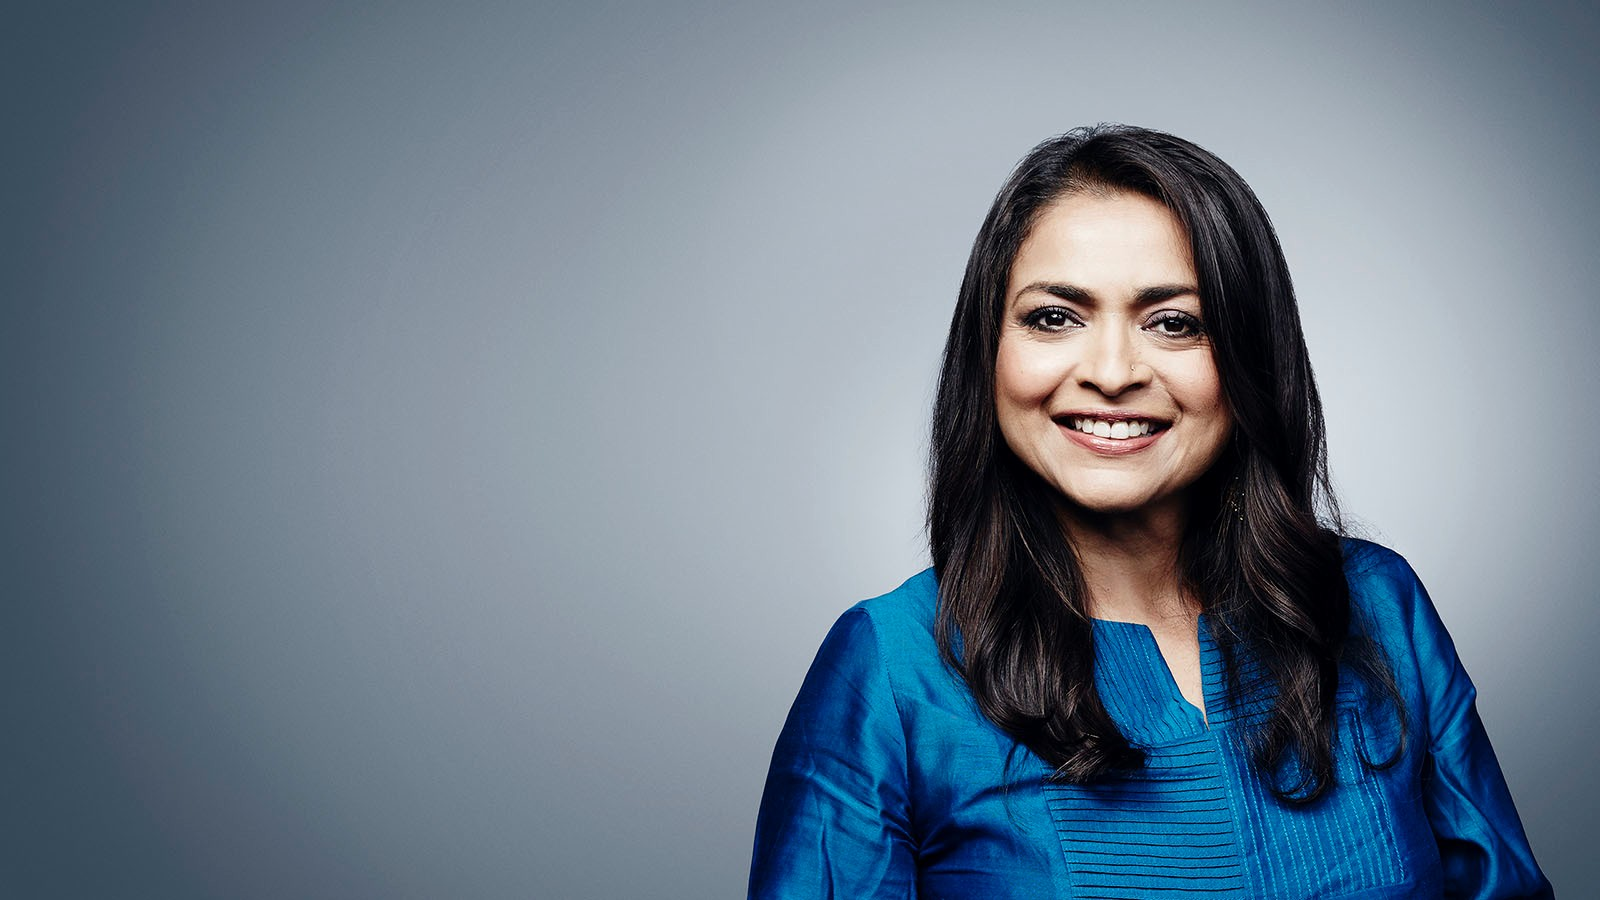 CNN Profiles - Moni Basu - CNN Digital reporter - CNN.com